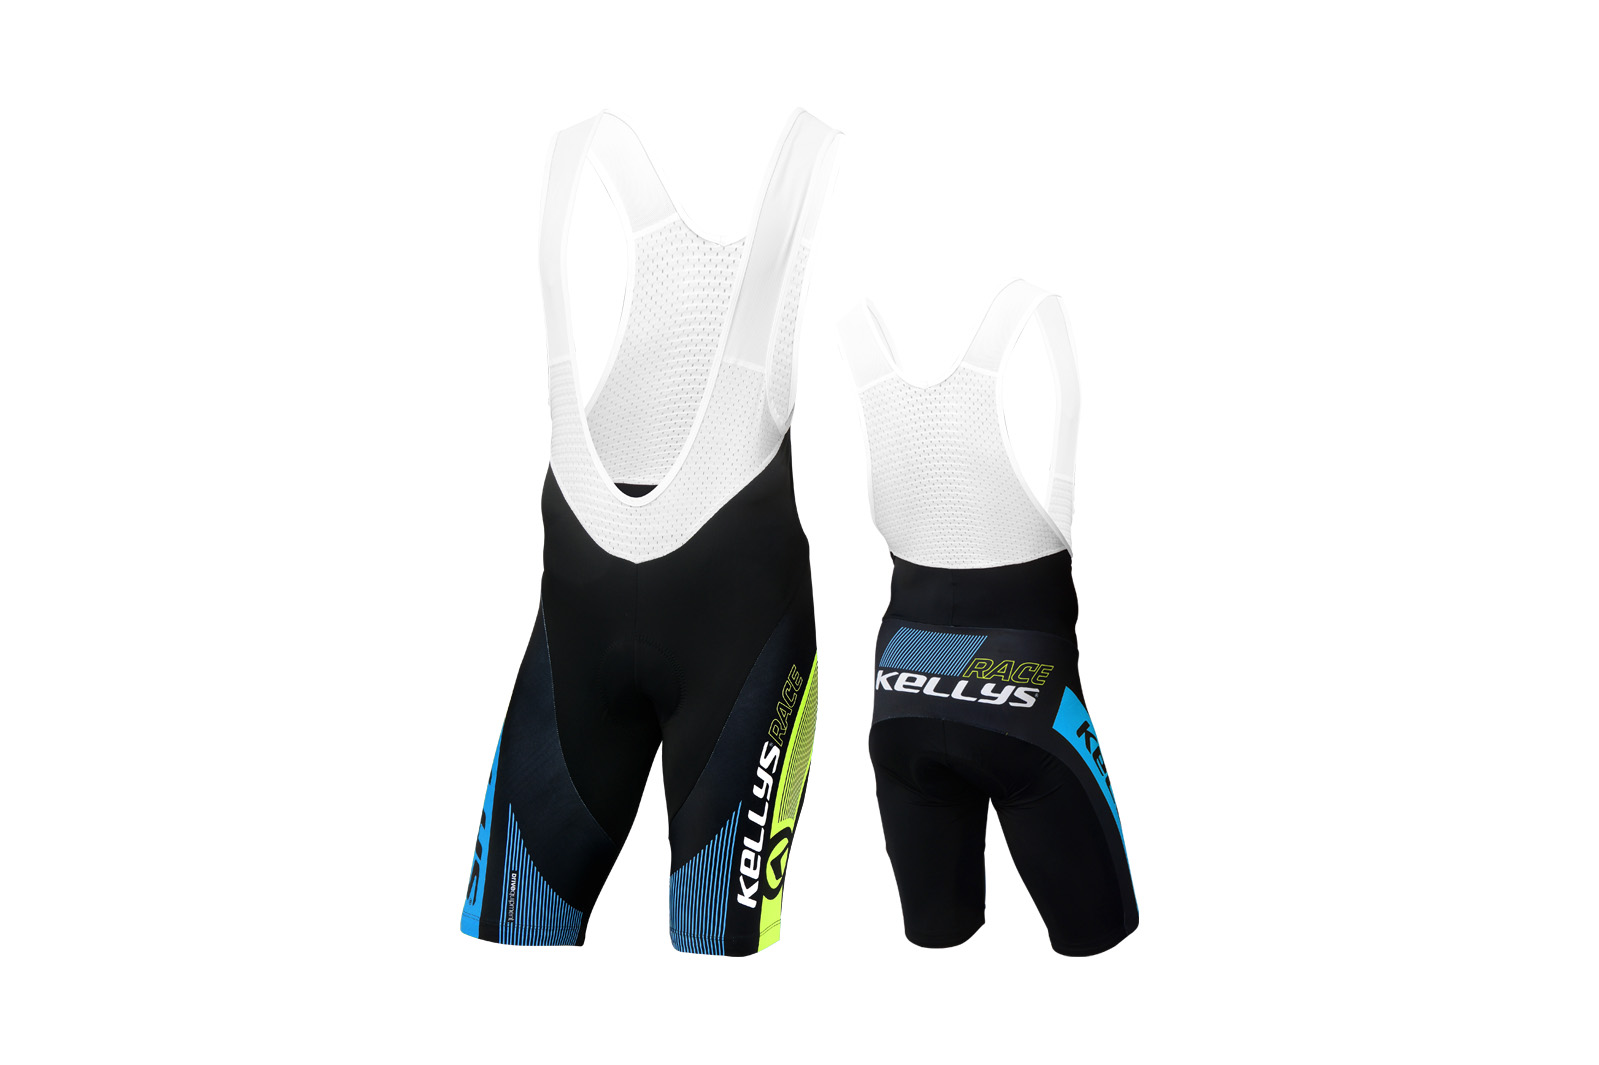 Profiträgerhose KELLYS PRO Race mit Sitzpolster blue - S - Sport Cycling Meindl - professional cycling